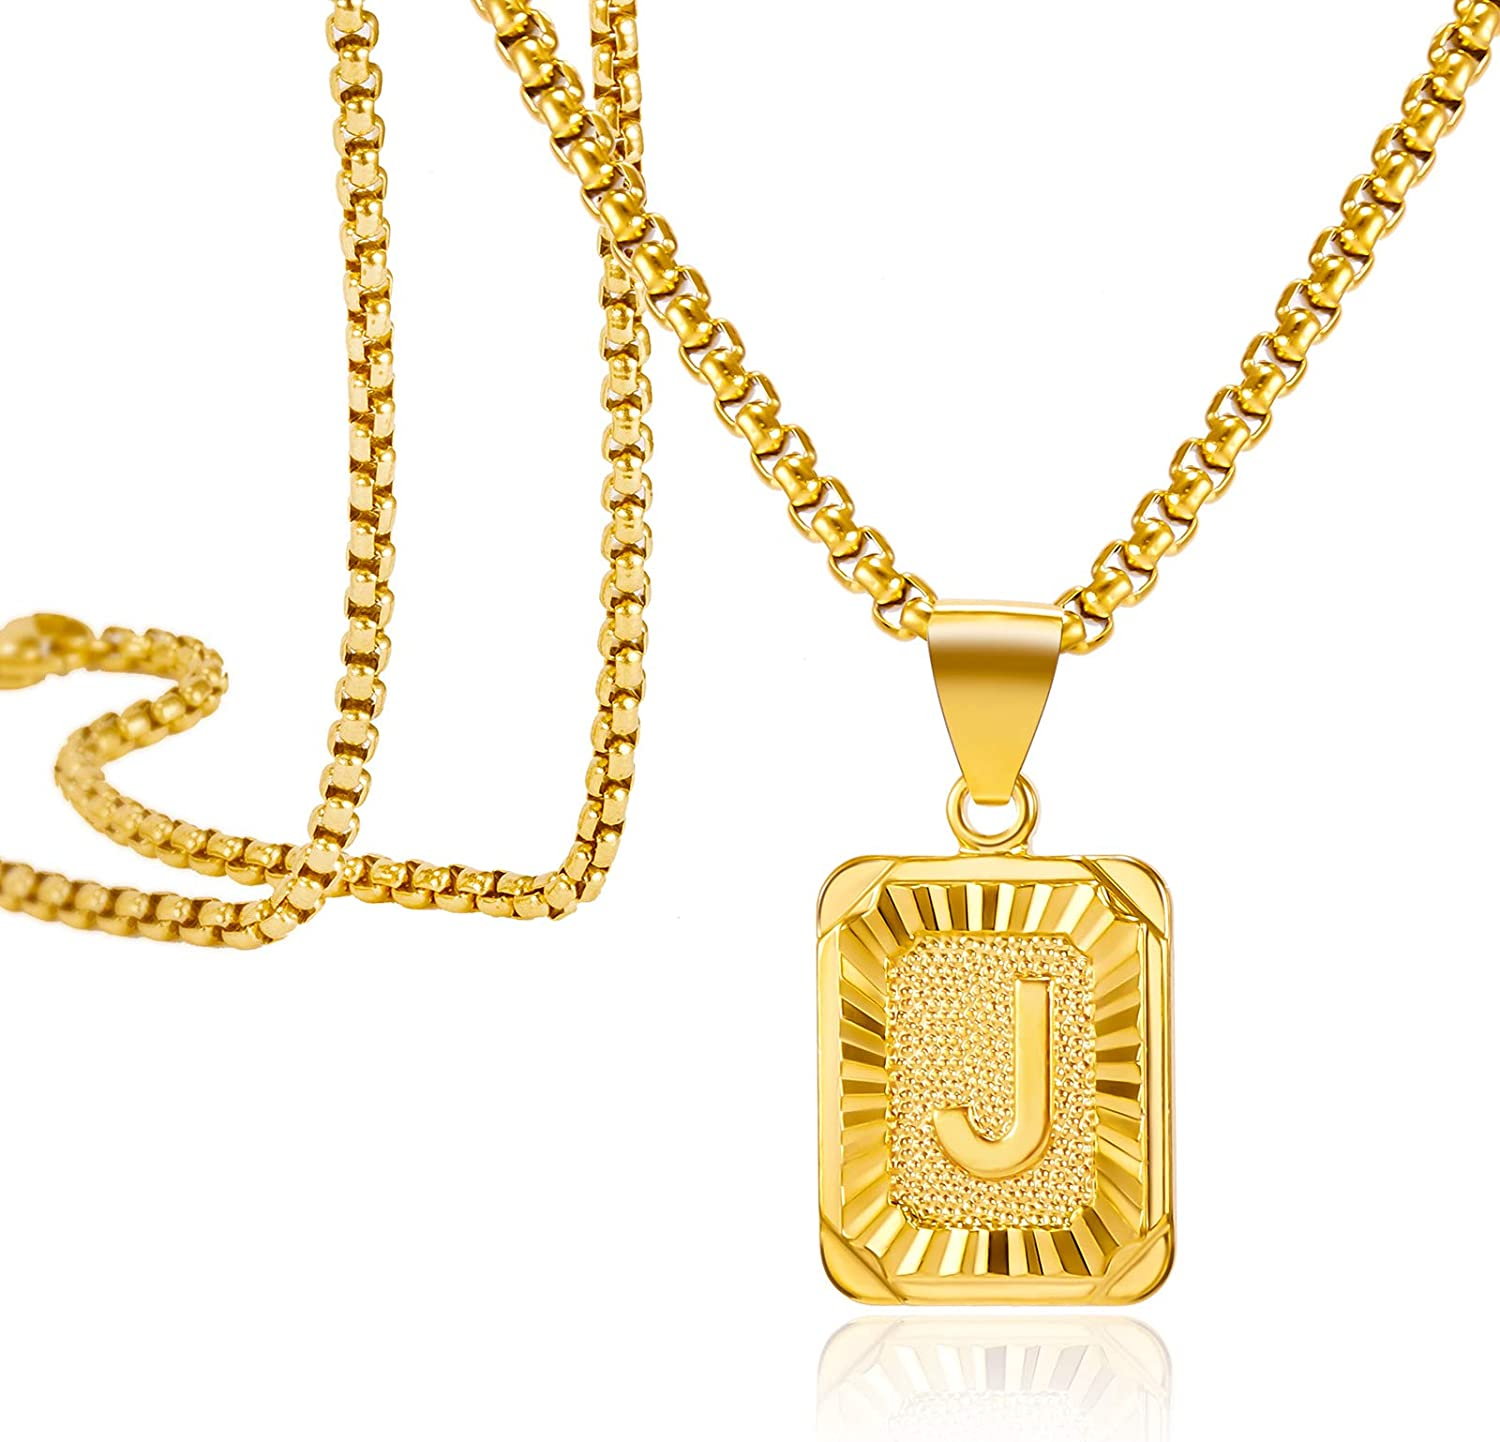 Harlermoon Initial Pendant Necklace A-Z 26 Capital Letters Monogram Name Necklace Box Chain Jewelry for Men Women